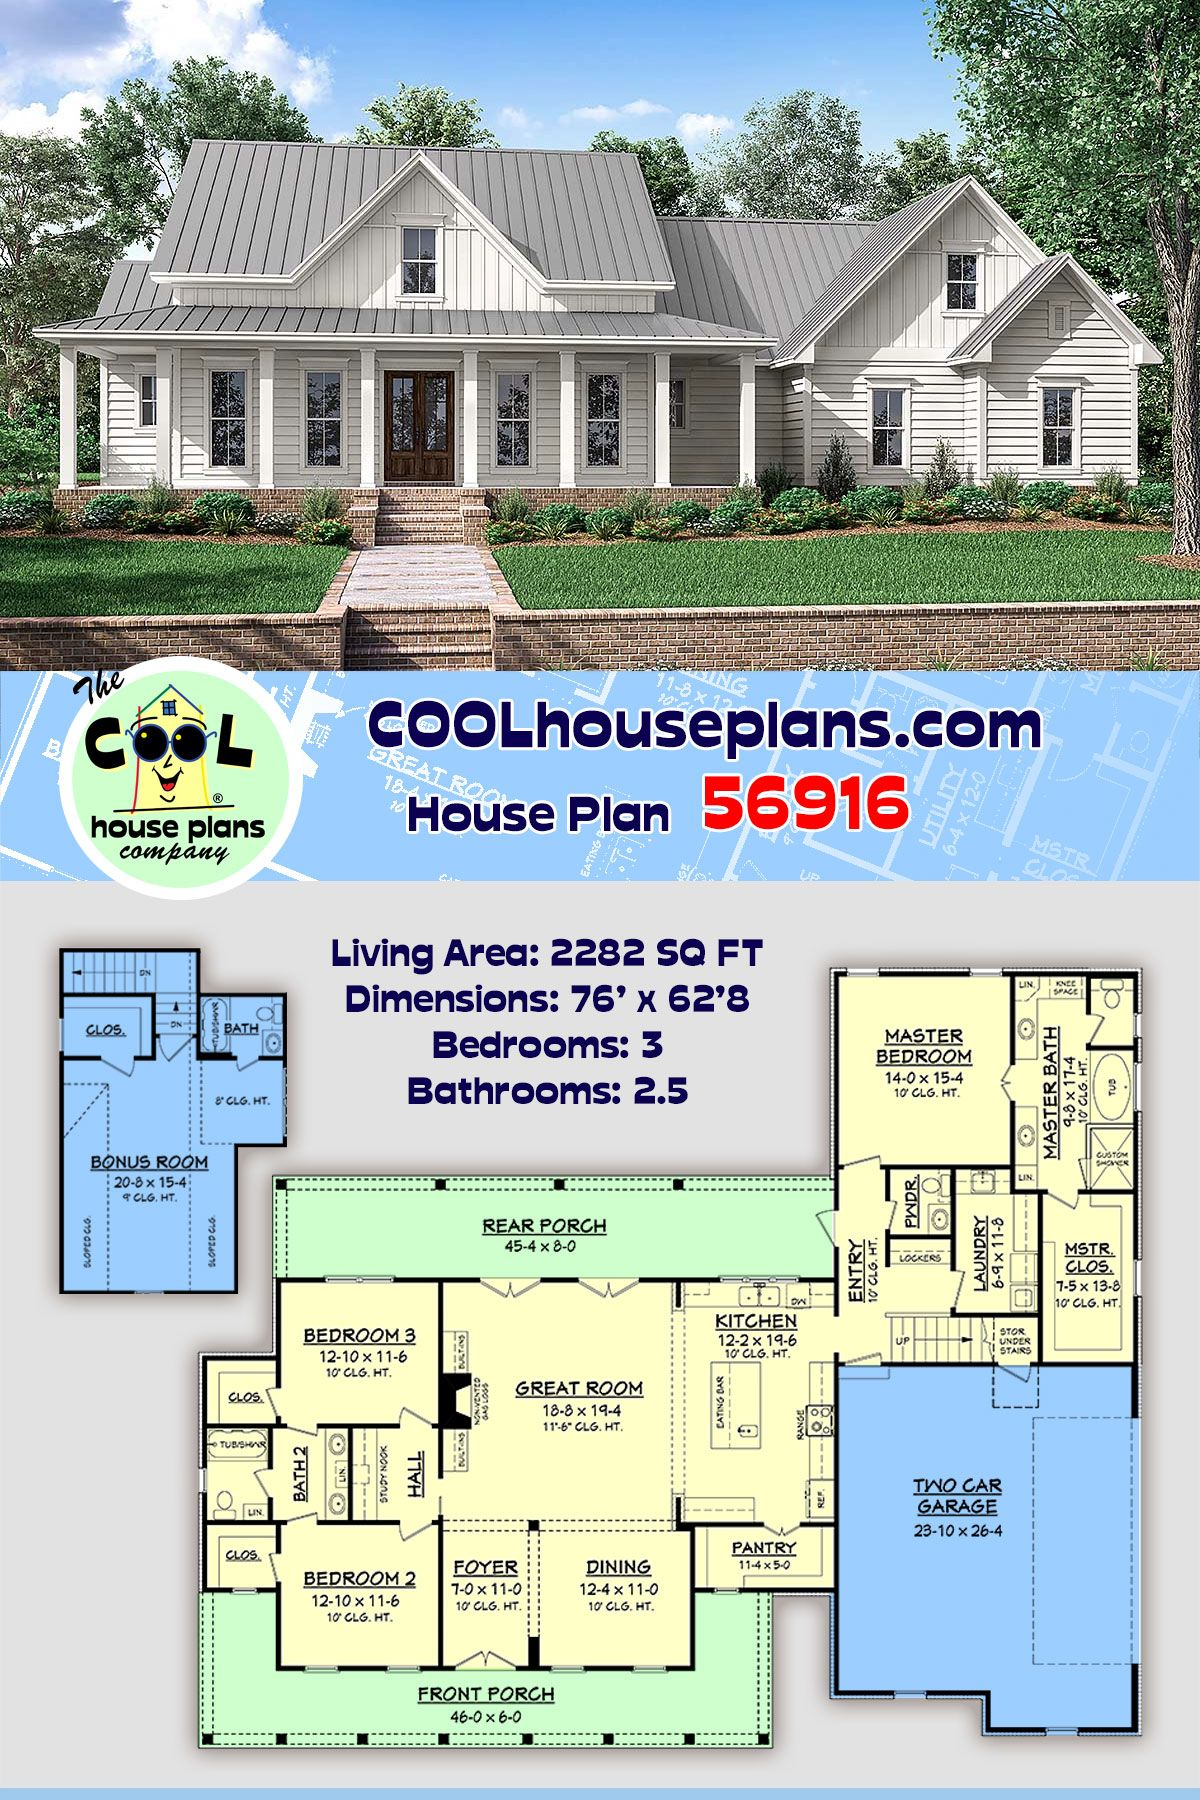 Traditional Style House Plan 56916 With 3 Bed 3 Bath 2 Car Garage In 2020 Southern House Plans Craftsman Style House Plans Basement House Plans